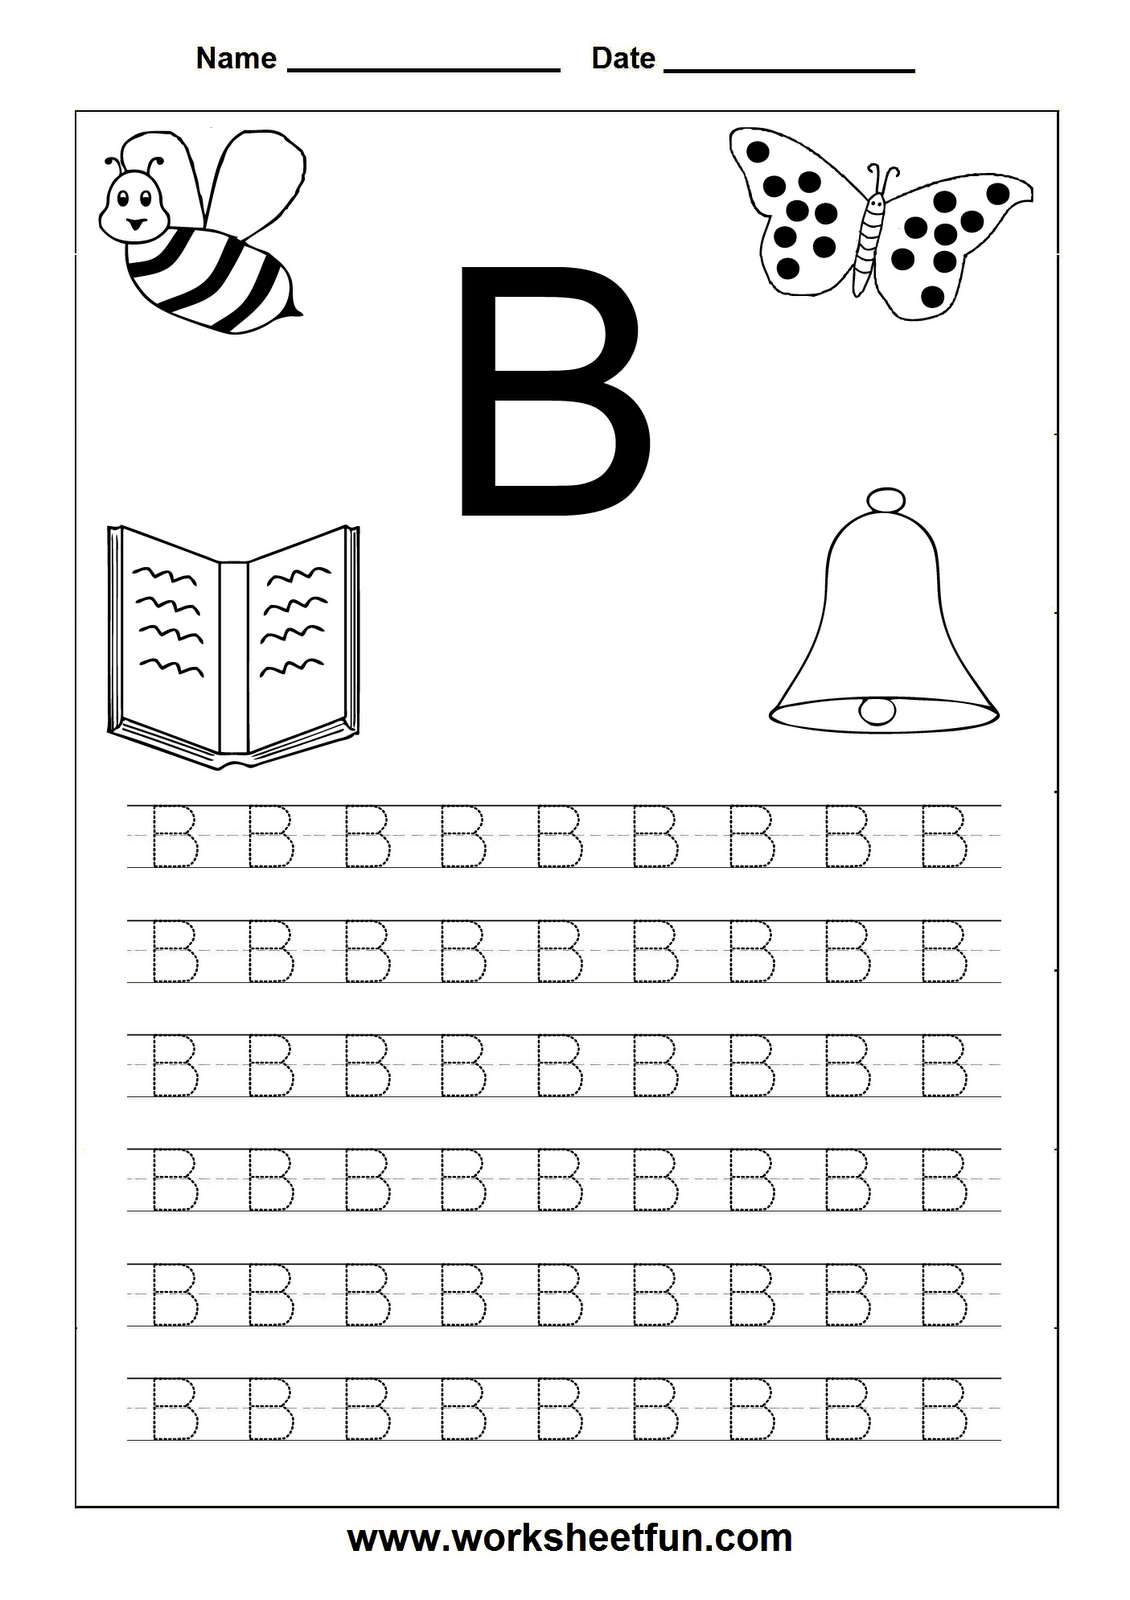 math worksheet : 1000 images about kindergarten worksheets on pinterest  : Abc Kindergarten Worksheets